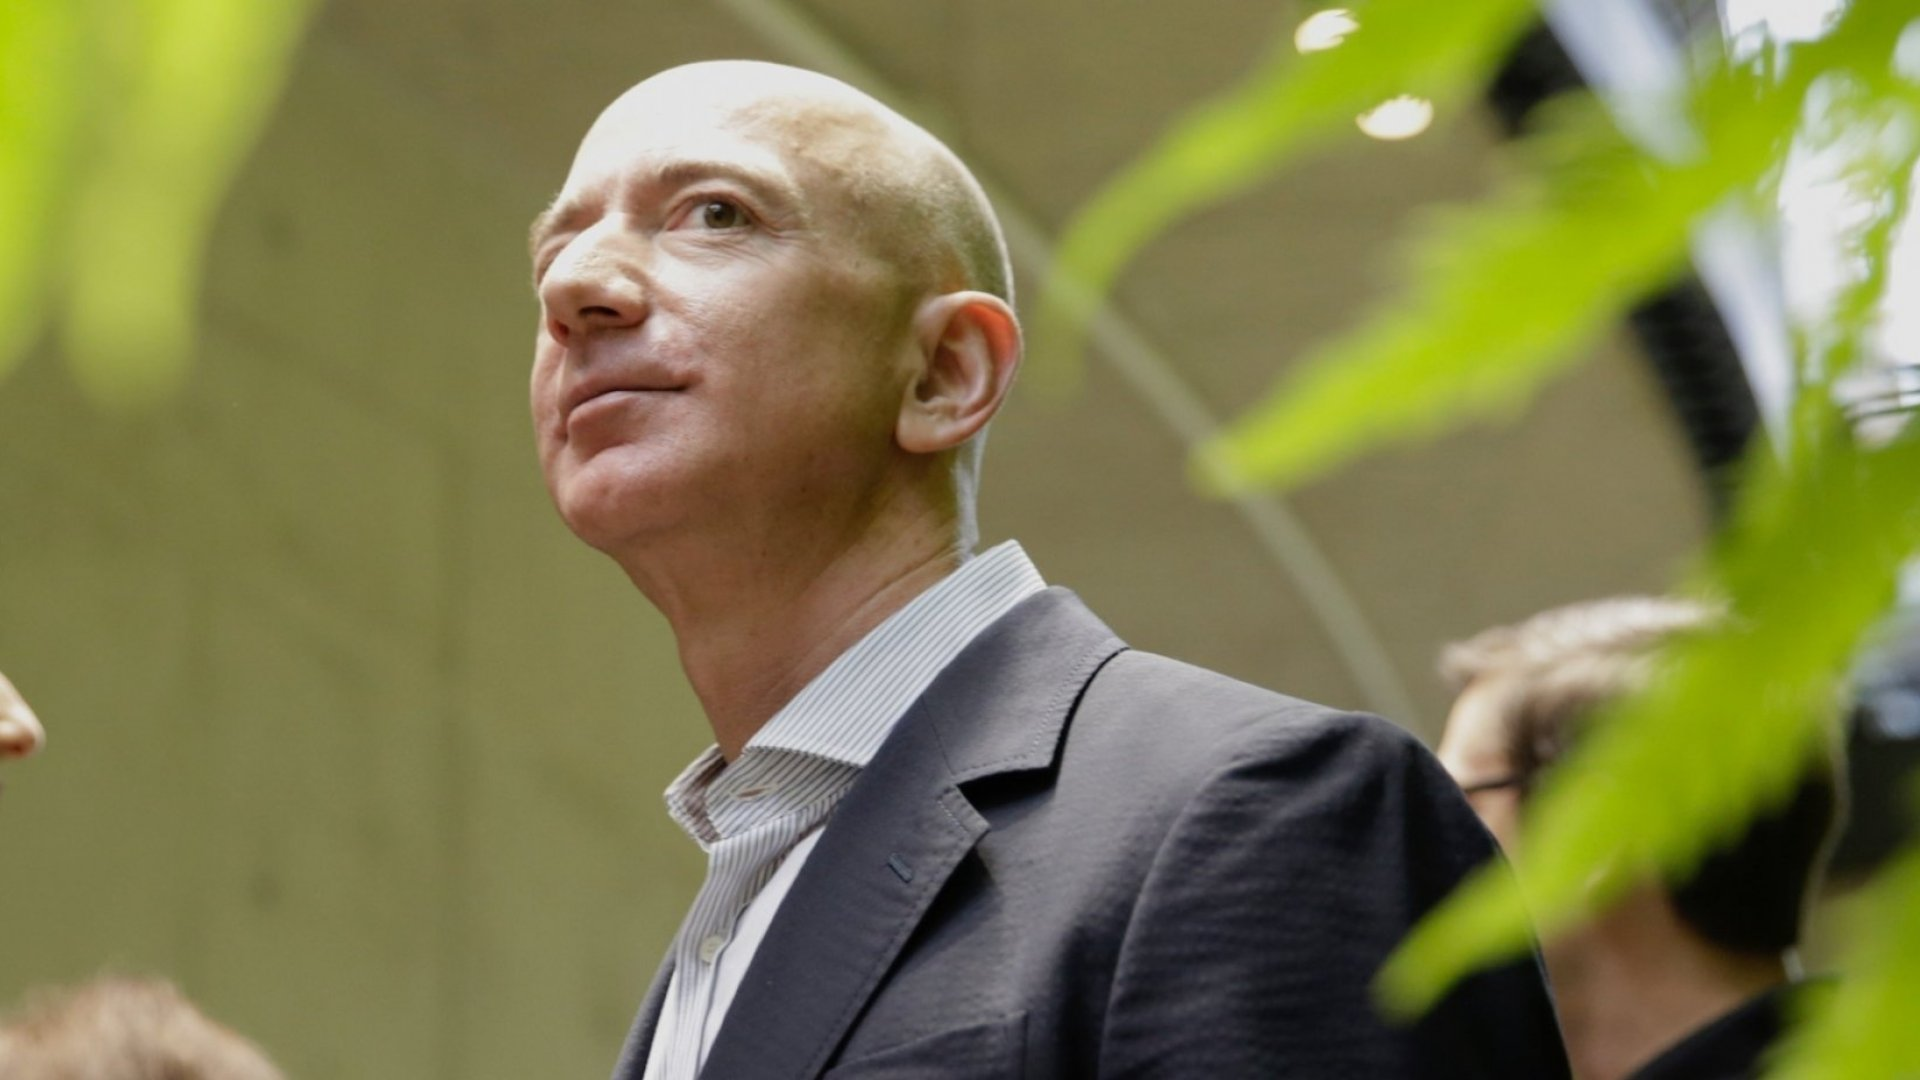 Chief Executive Officer of Amazon, Jeff Bezos, tours the facility at the grand opening of the Amazon Spheres, in Seattle, Washington on January 29, 2018.  Amazon opened its new Seattle office space which looks more like a rainforest. The company created the Spheres Complex to help spark employee creativity.